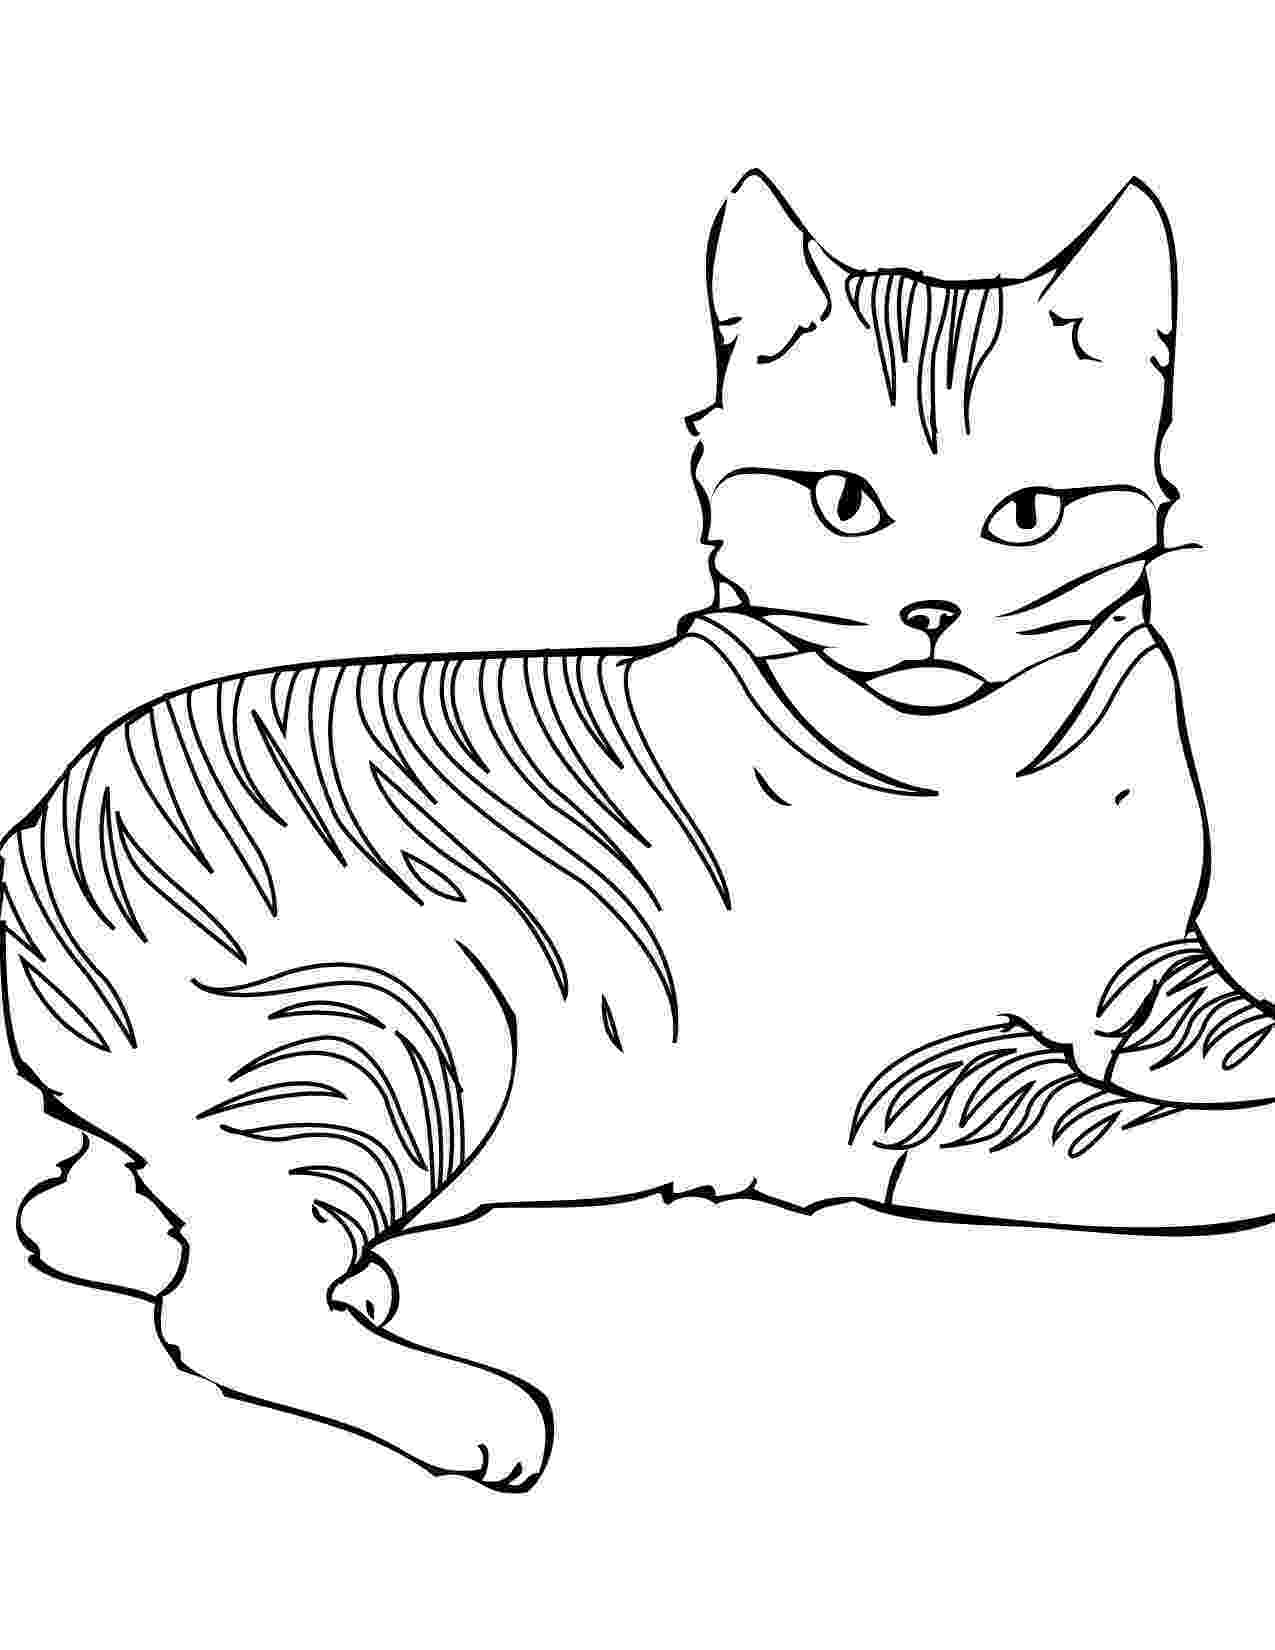 cat coloring pages free printable free printable cat coloring pages for kids coloring pages printable cat free